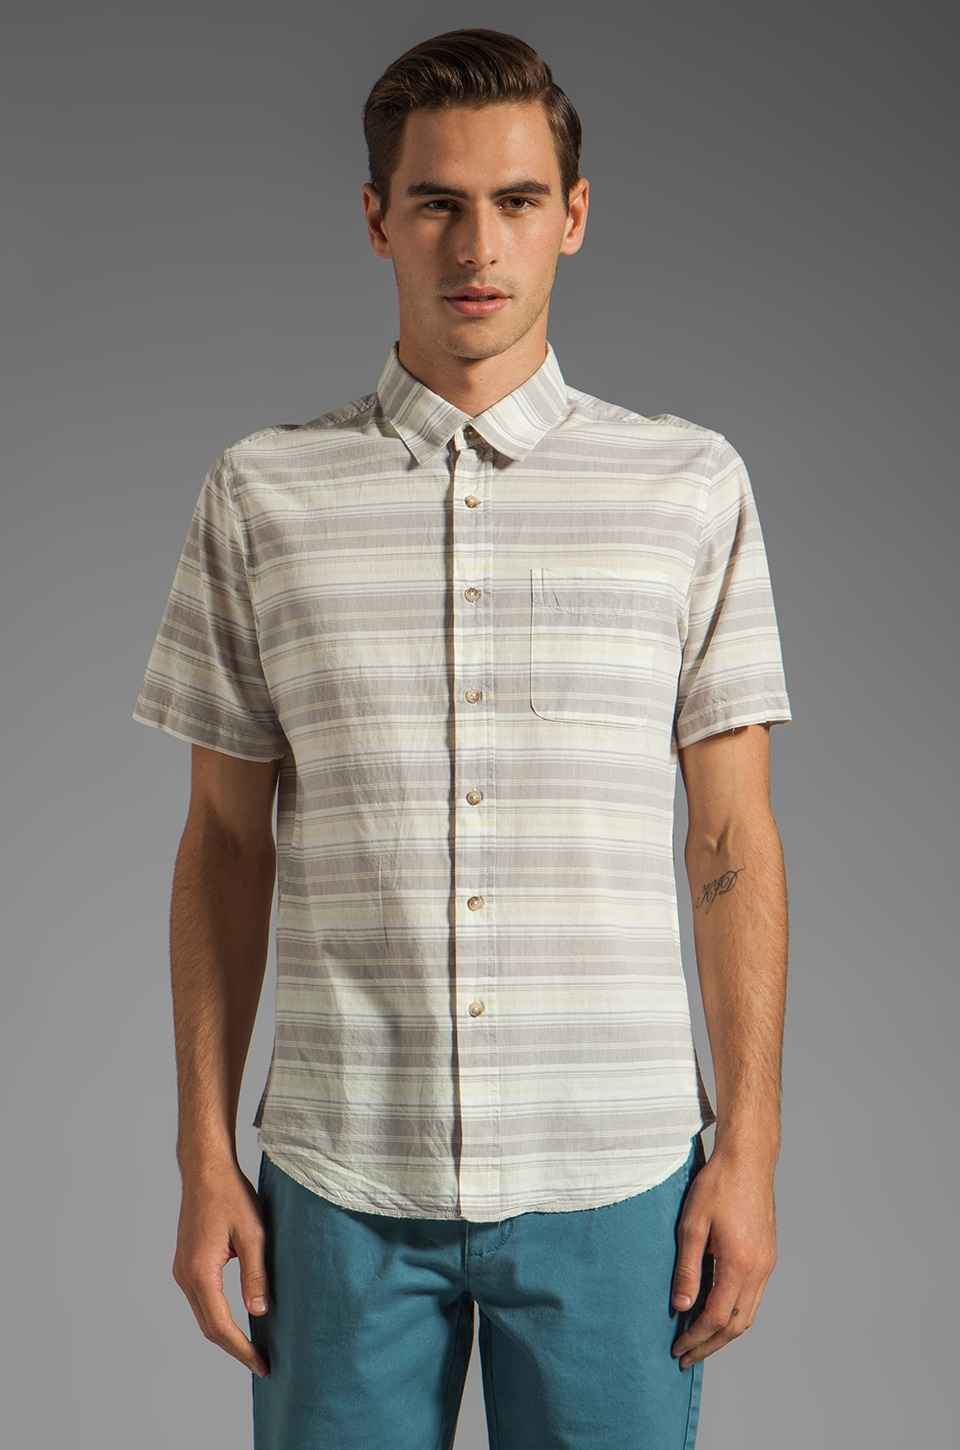 RVCA Raya S/S Shirt in Haze